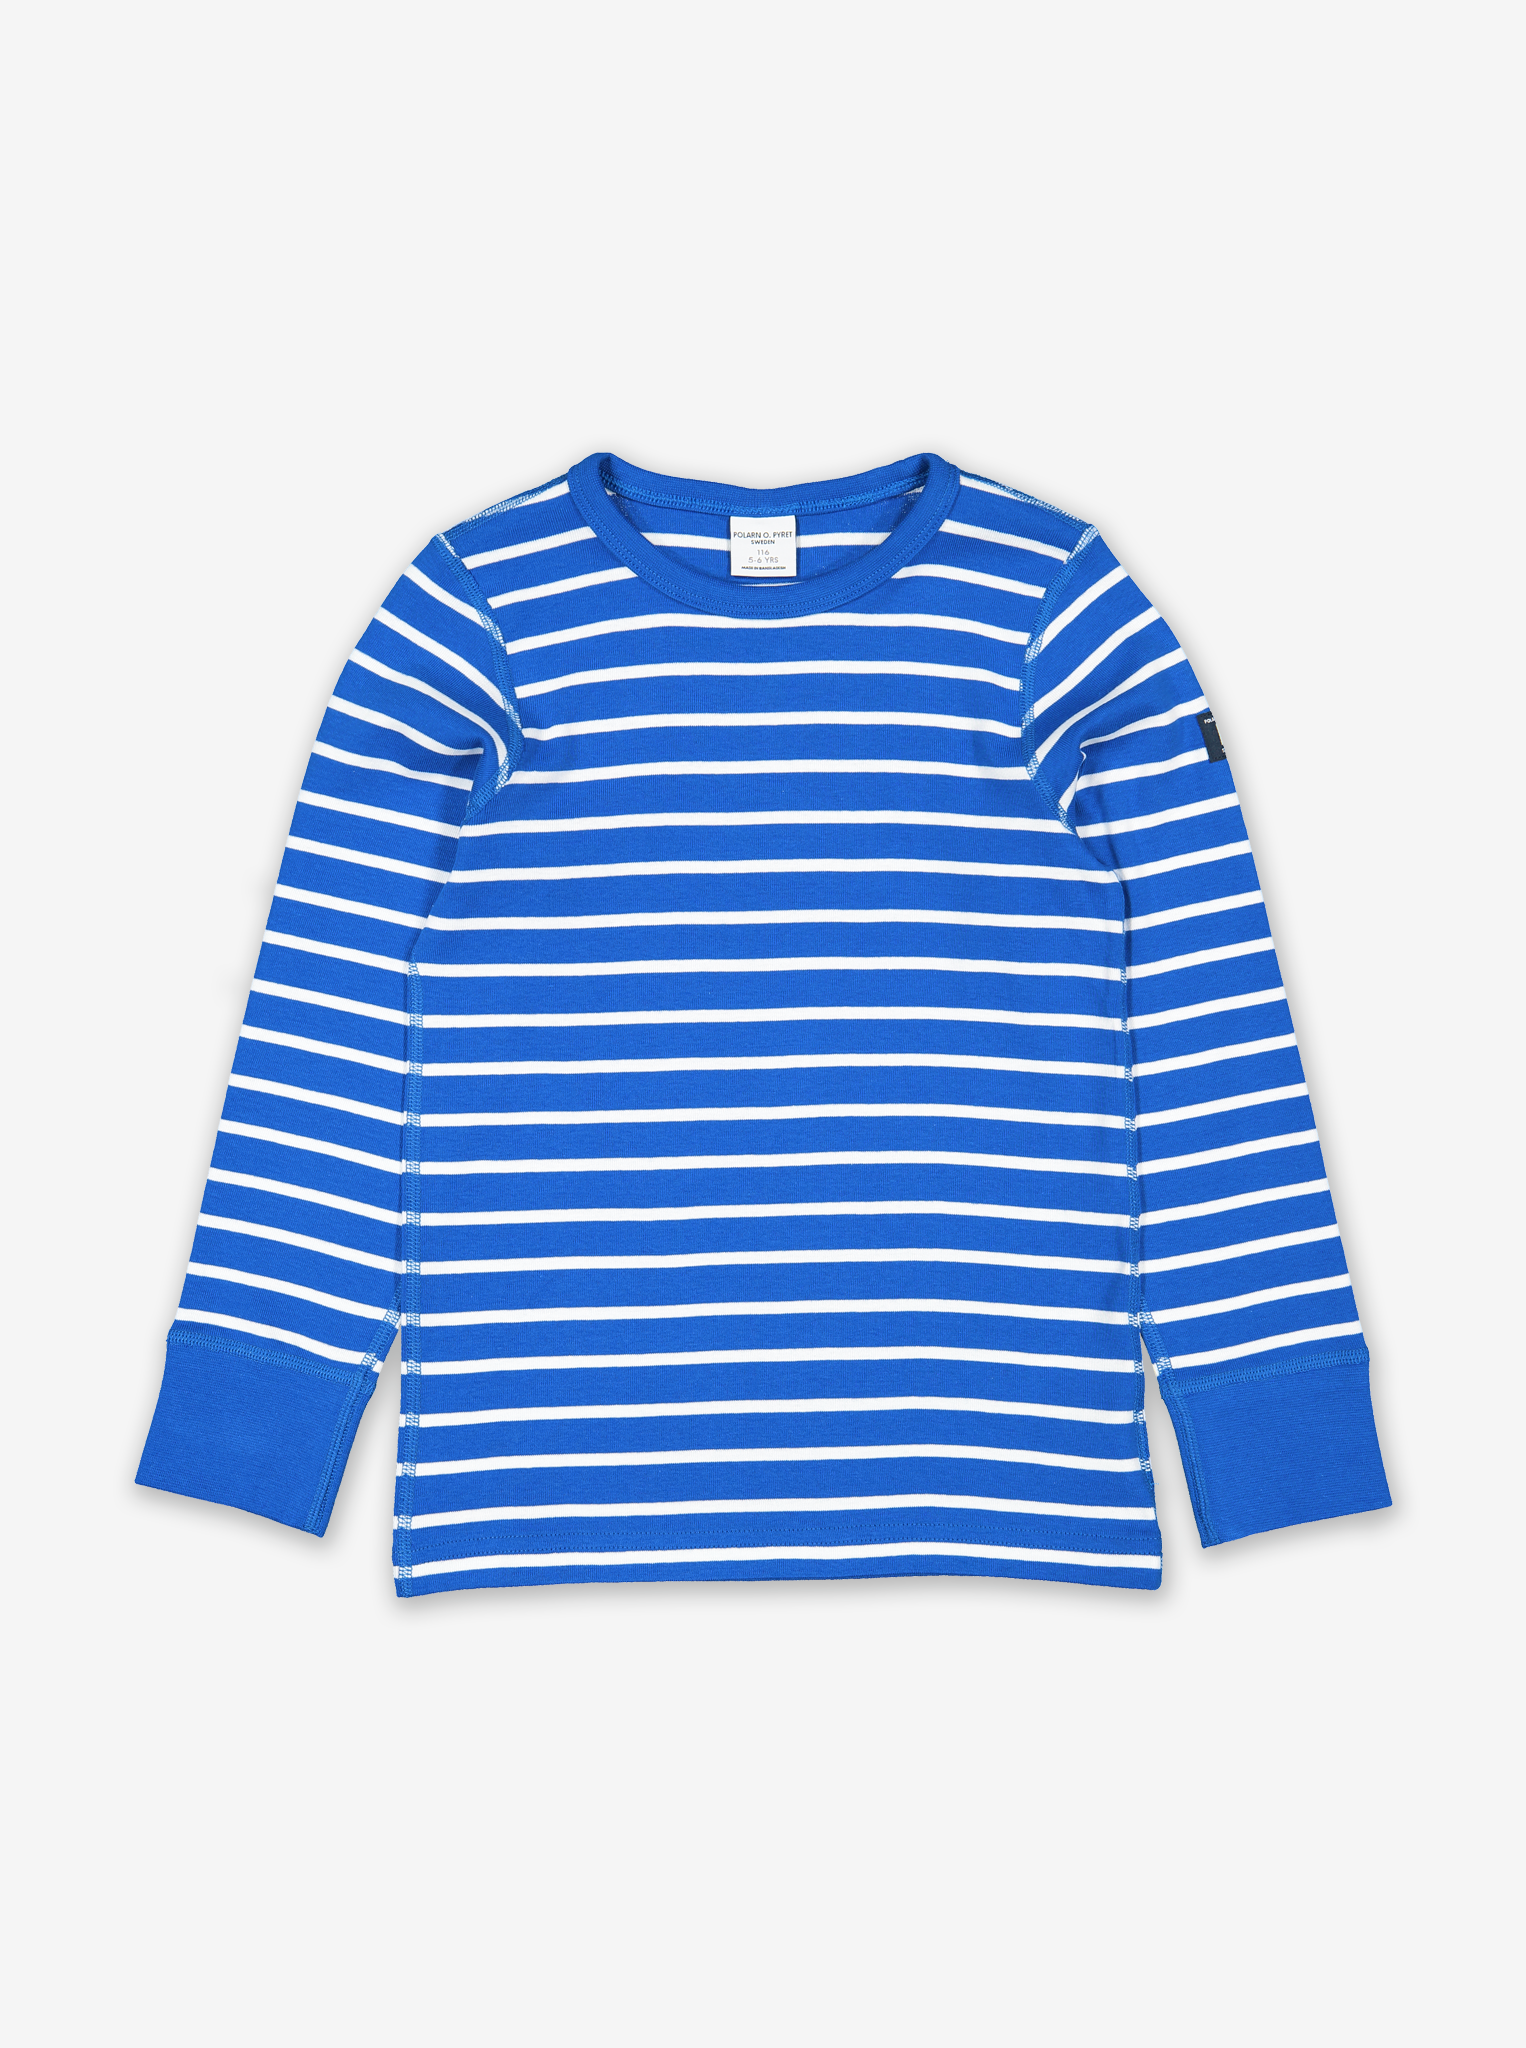 Striped Kids Top-Unisex-1-6y-Blue